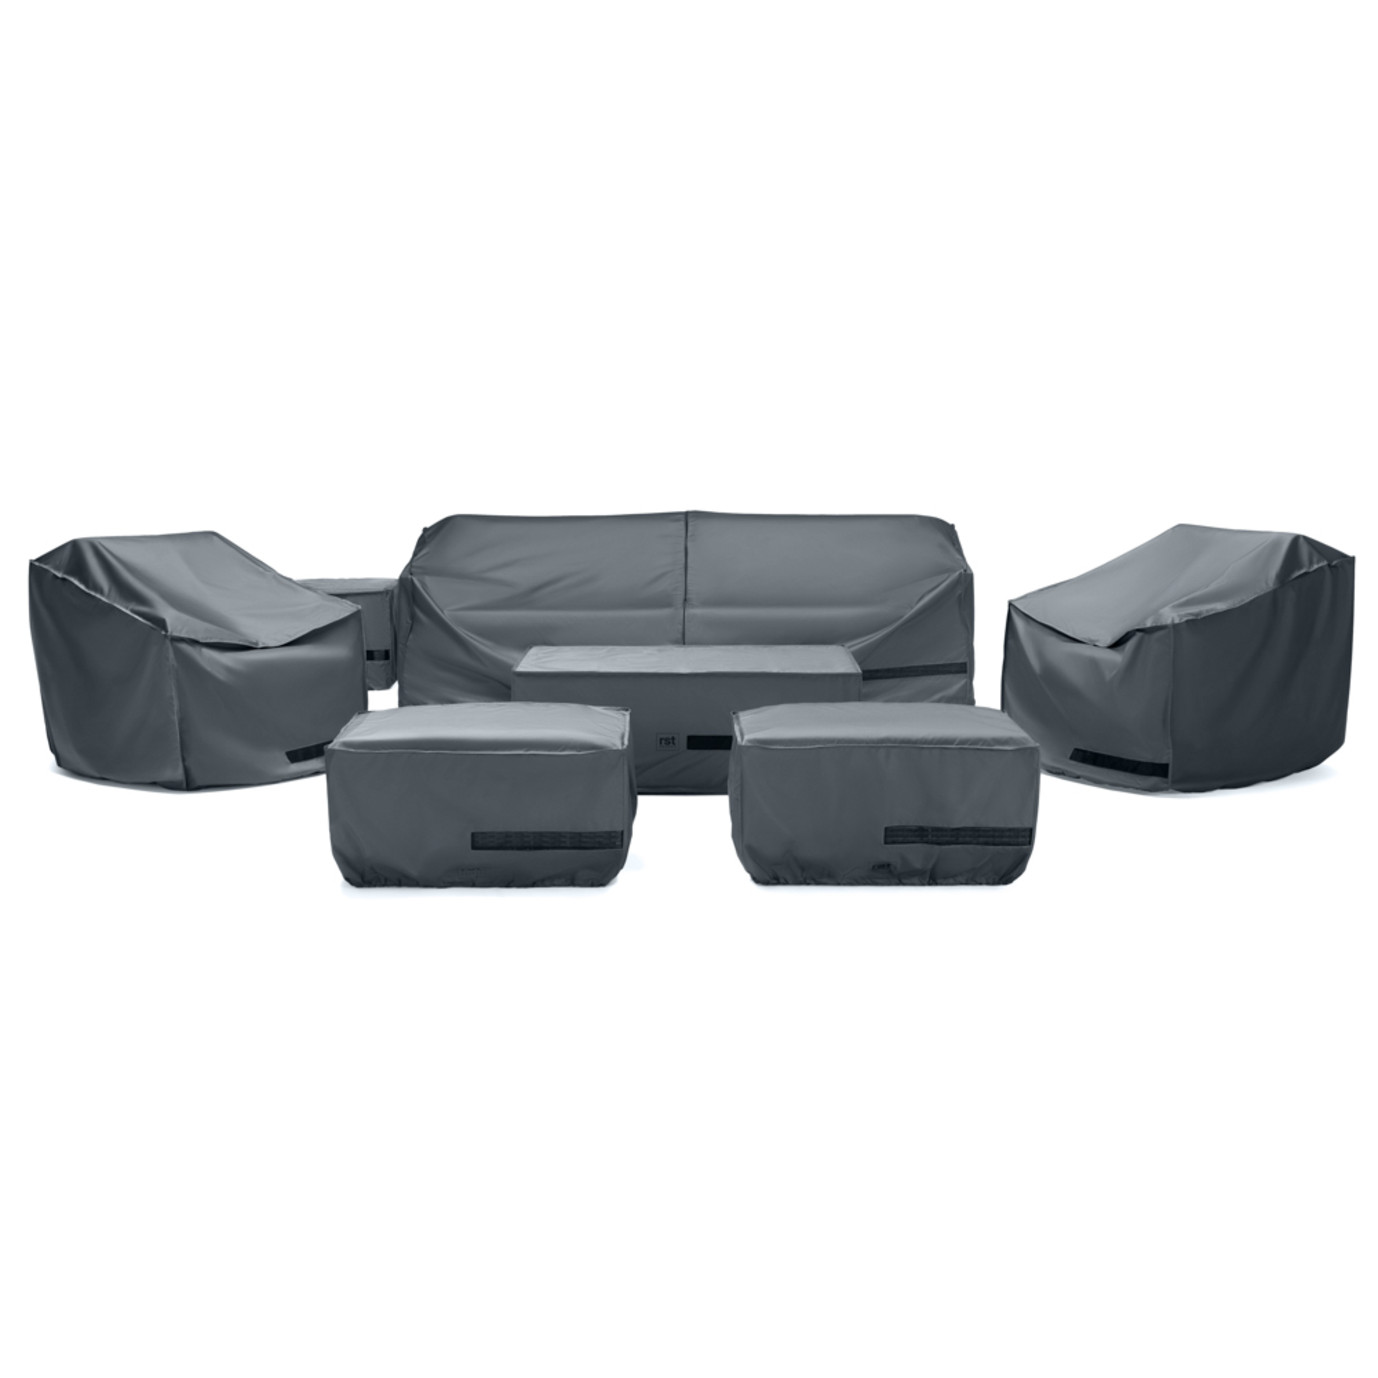 Deco™ 8 Piece Sofa & Club Chair Furniture Cover Set